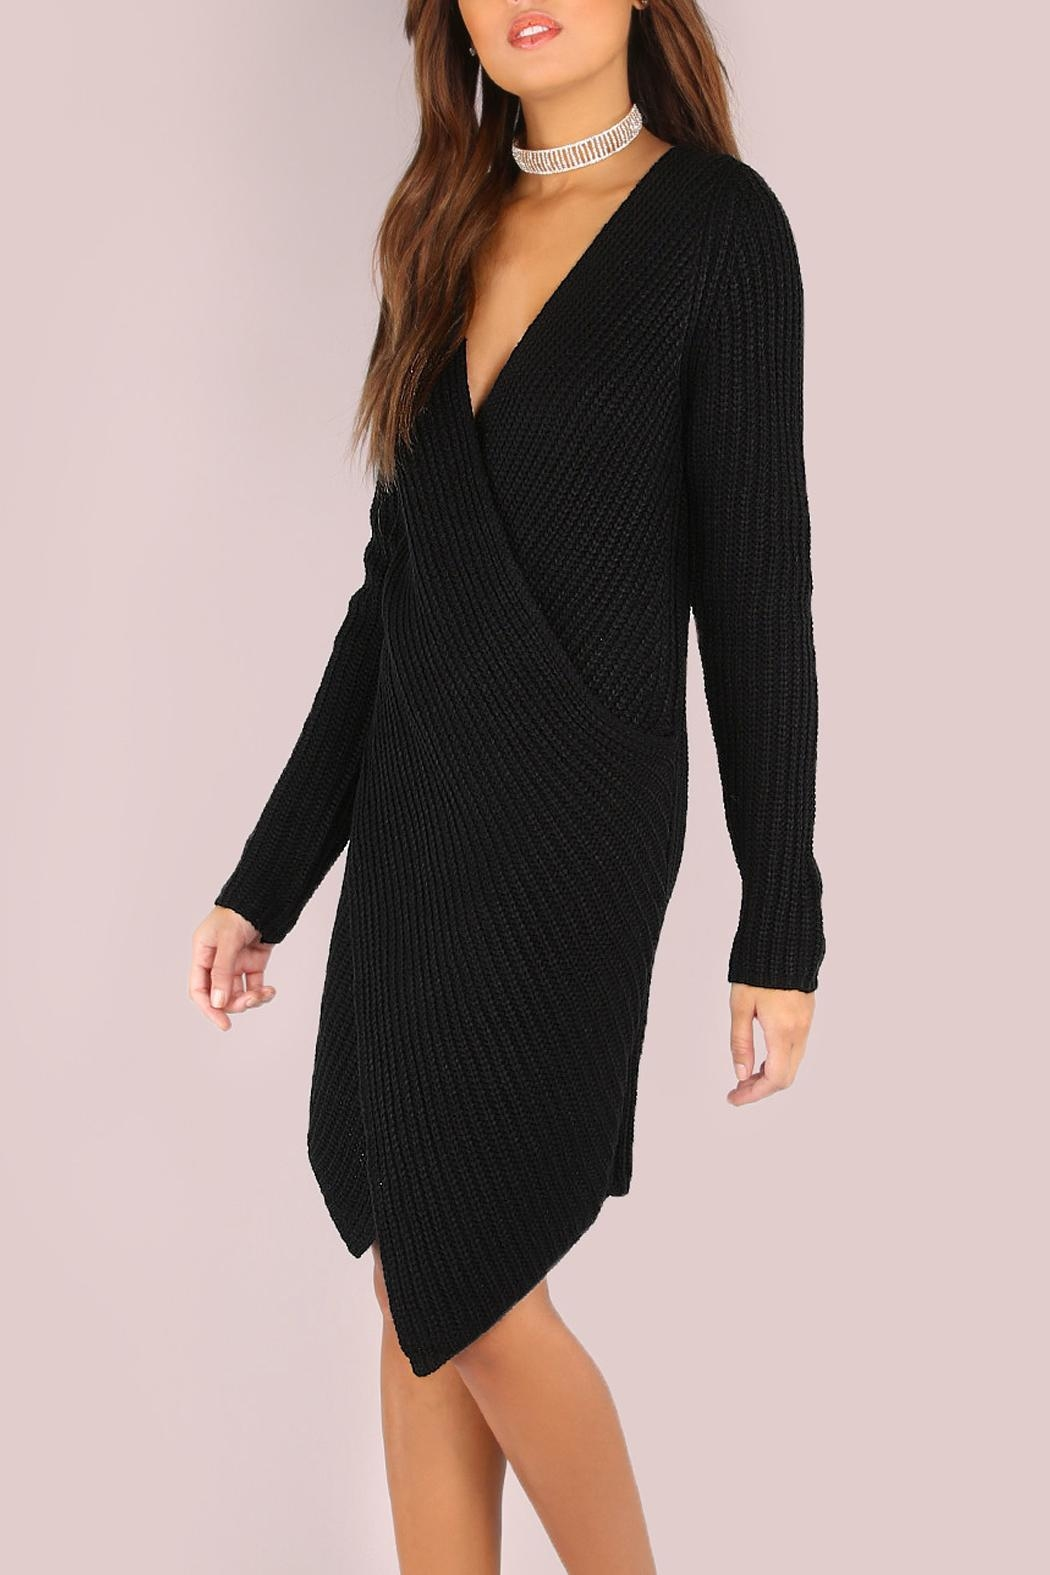 House of Atelier Sweater Wrap Dress - Front Full Image